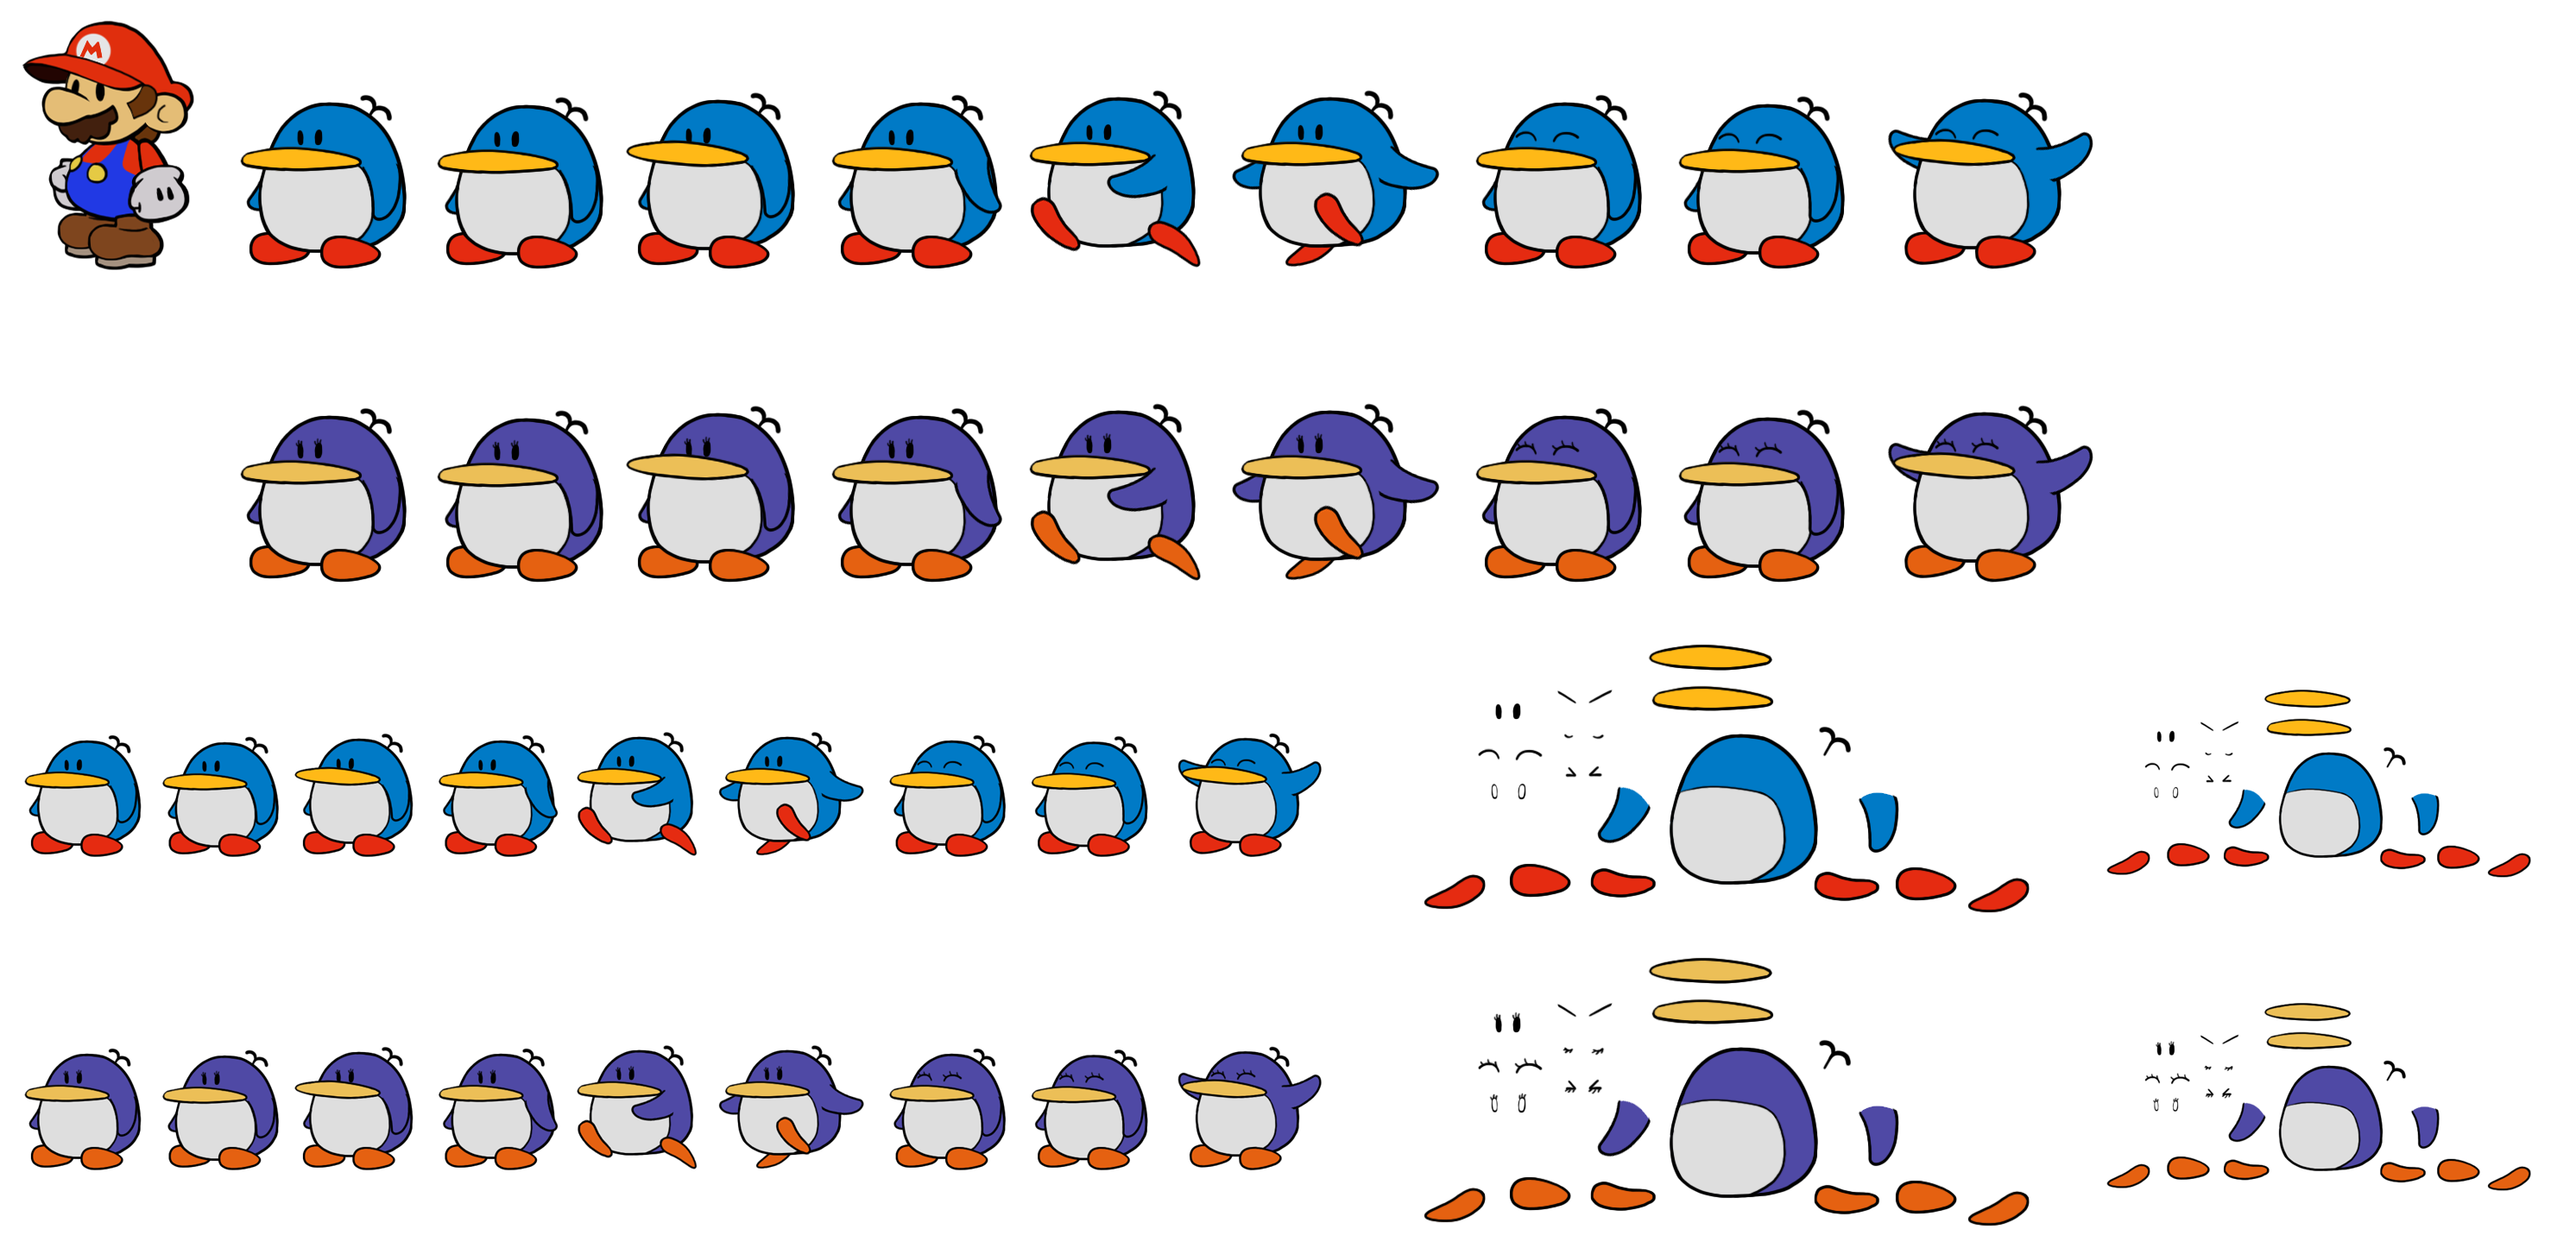 Bumpties (Paper Mario Style)